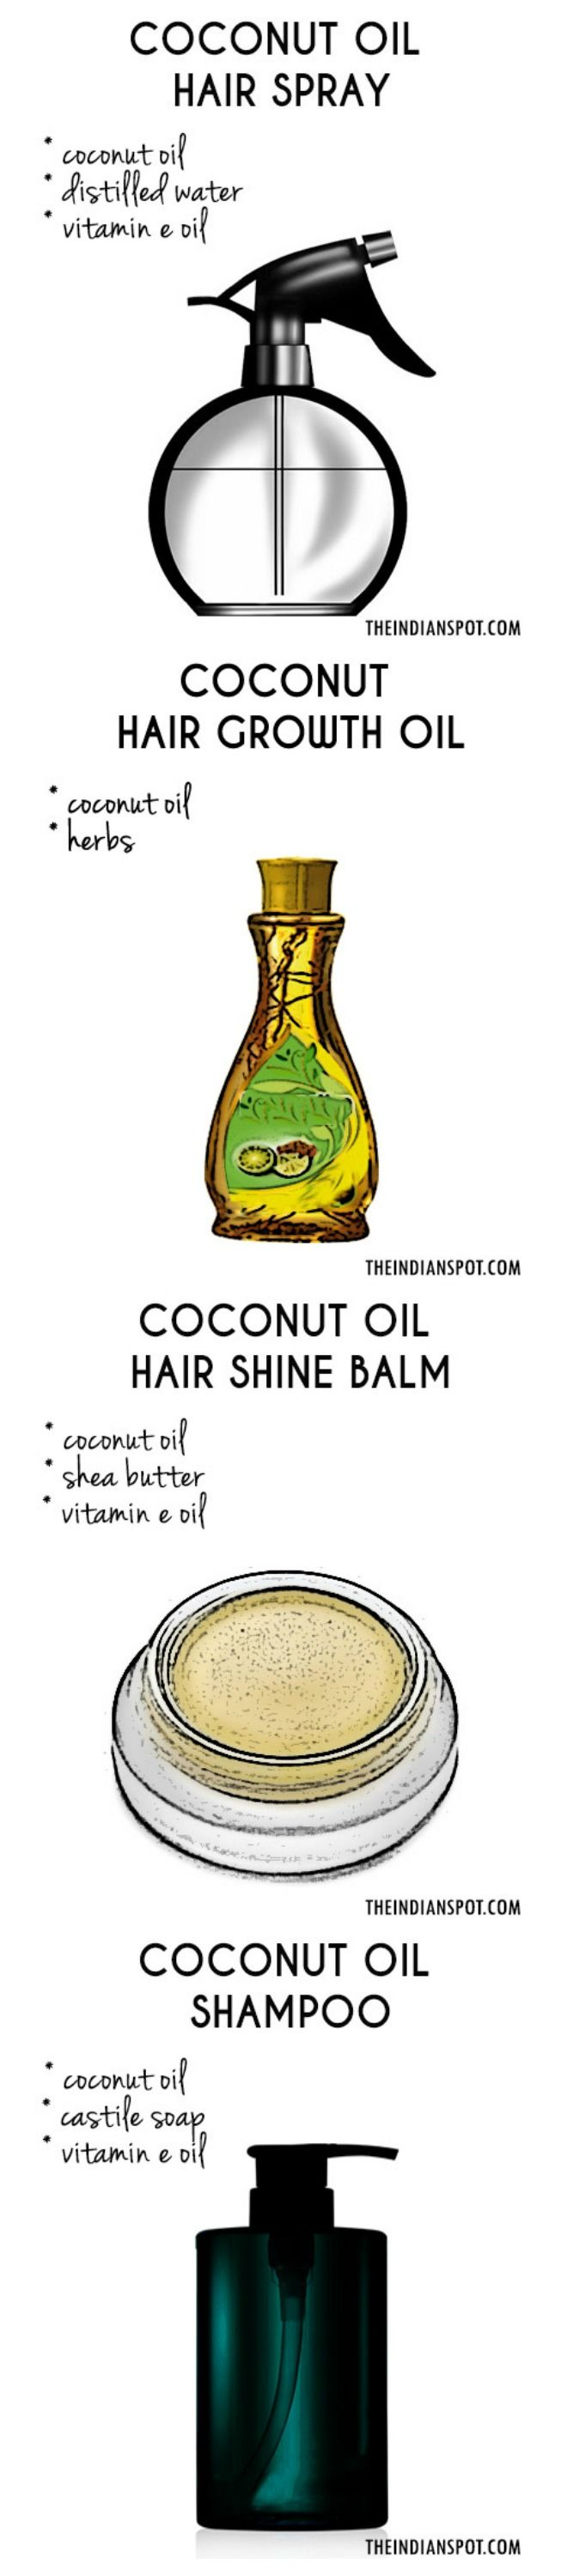 BEST DIY COCONUT OIL HAIR PRODUCTS FOR FASTER HAIR GROWTH